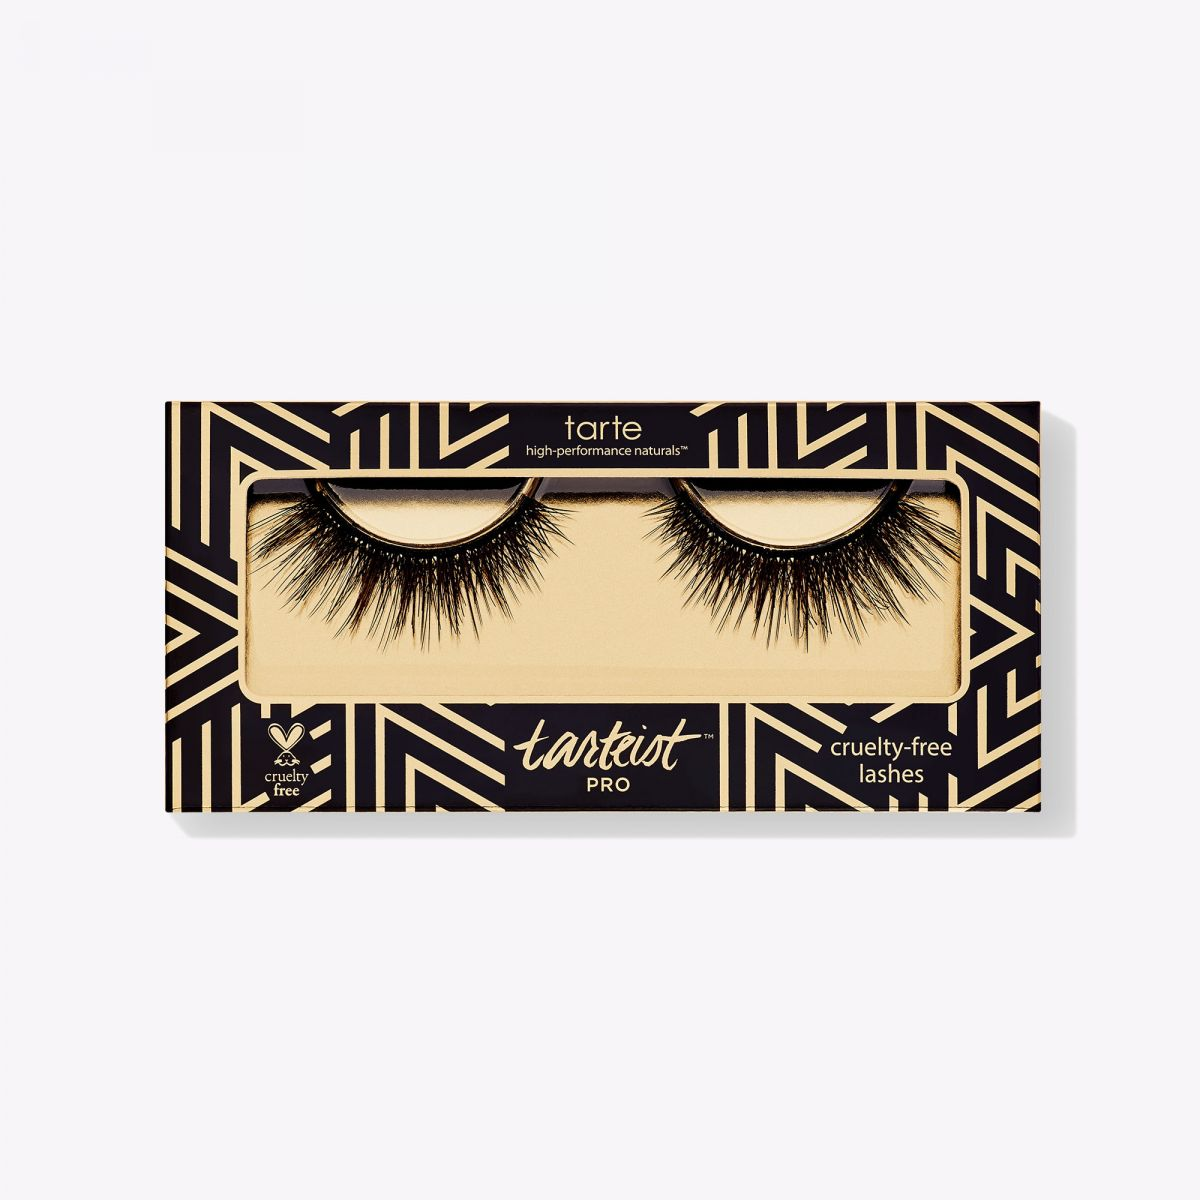 Ресницы Tarte Cosmetics - Center Of Attention (Tapered Length & Volume) tarteist™ PRO cruelty-free lashes